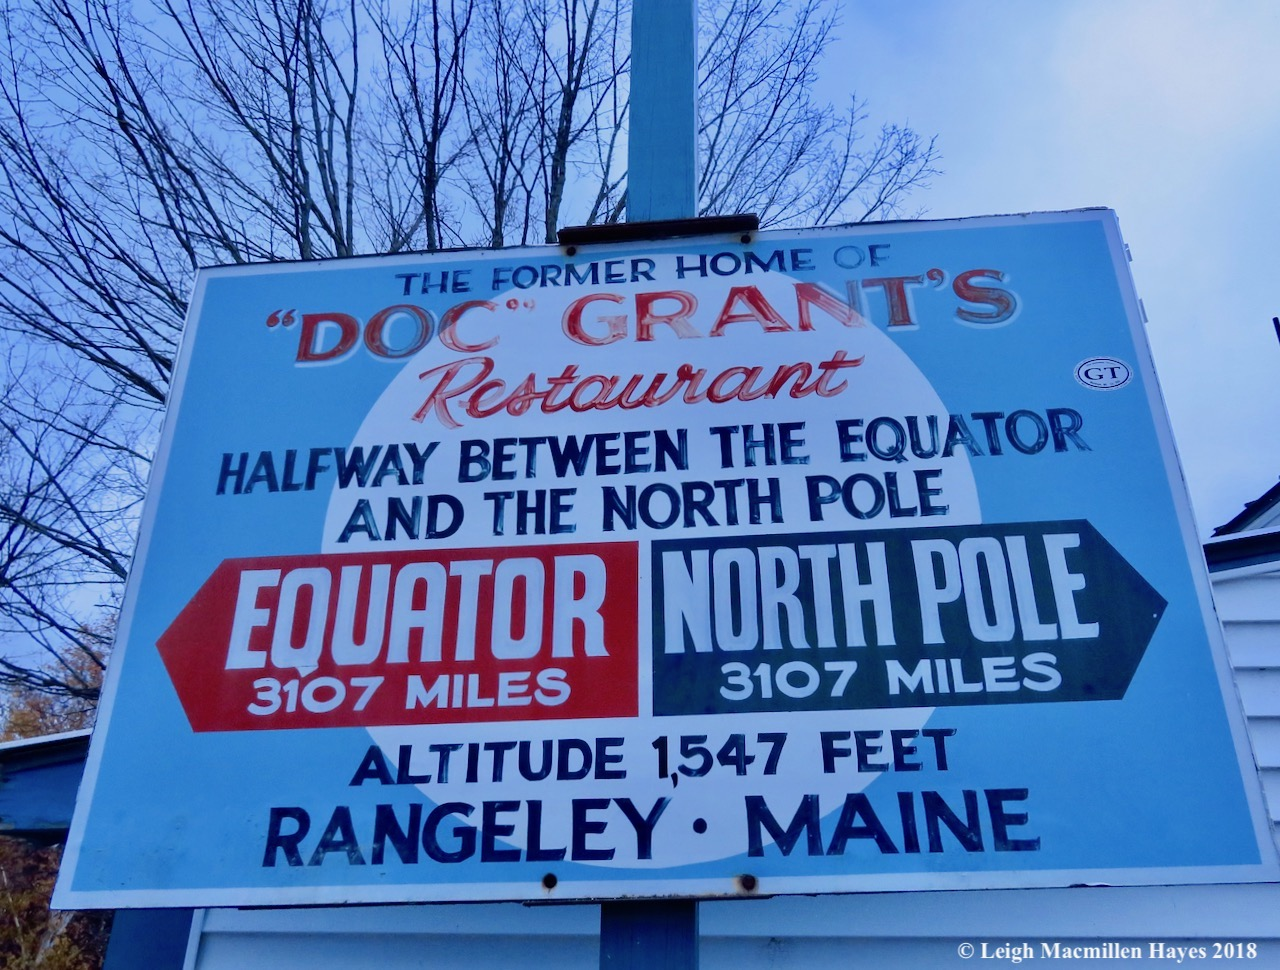 5-halfway between equator and north pole